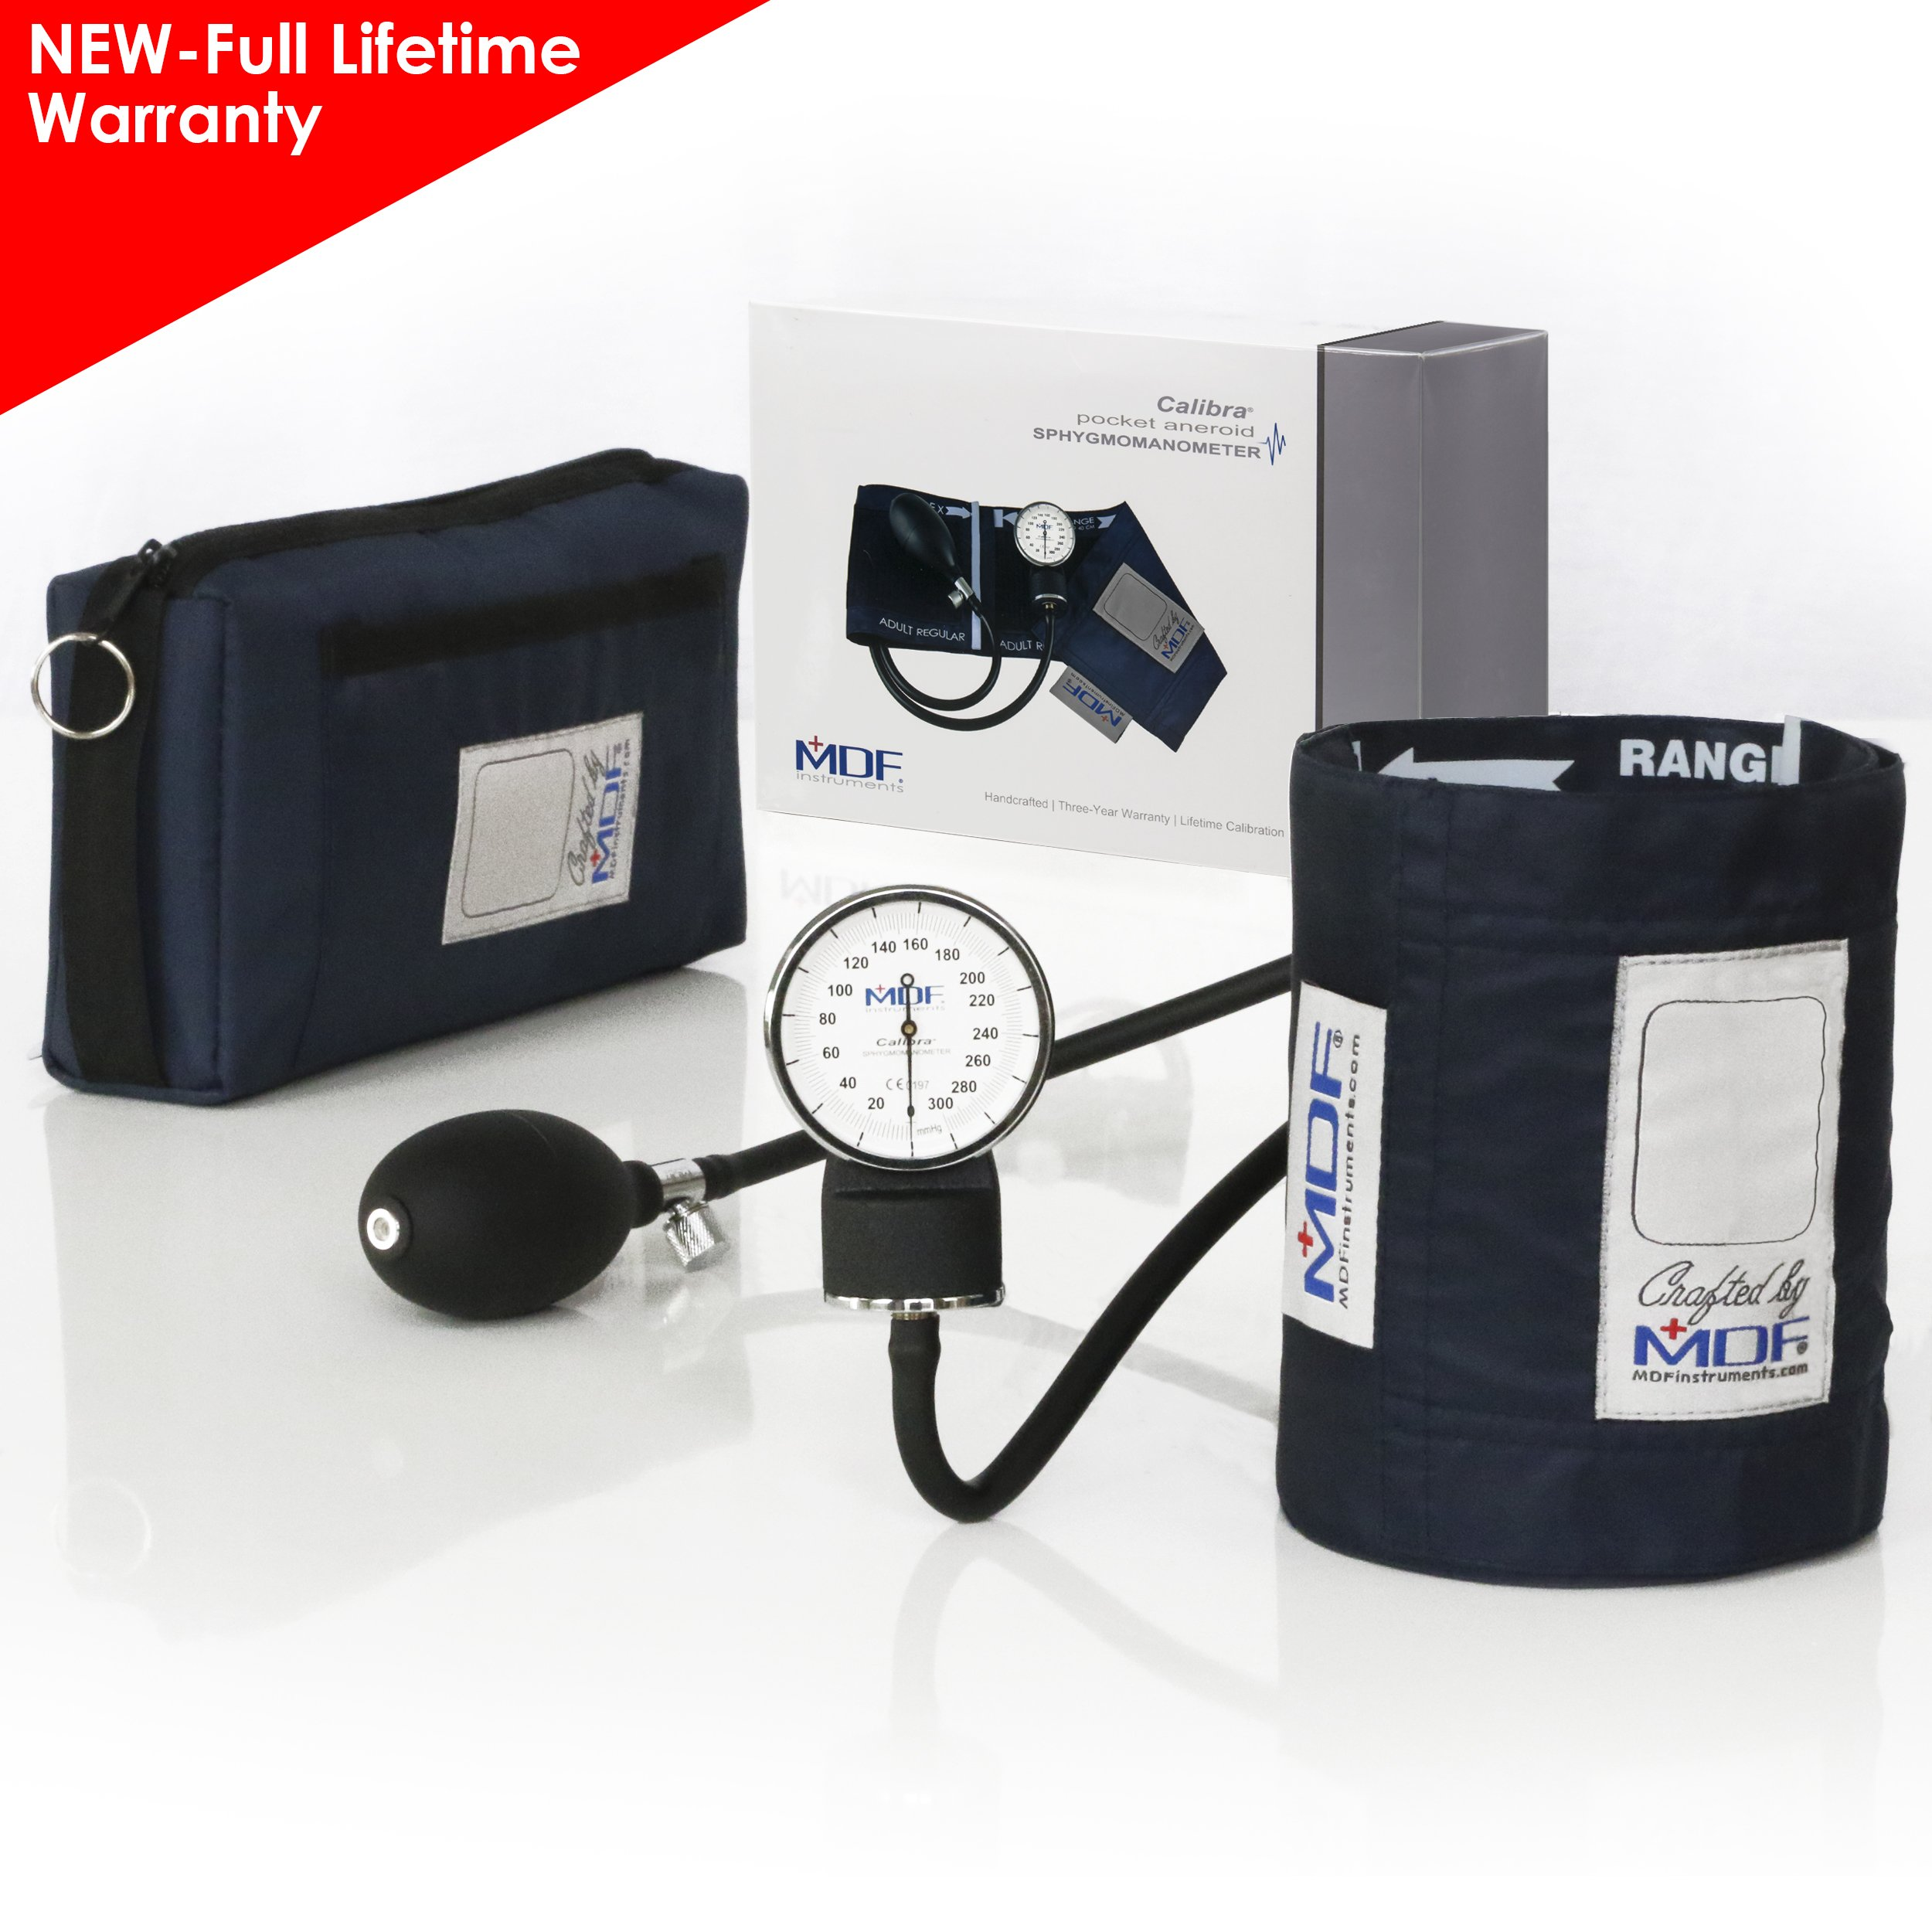 MDF Calibra Aneroid Premium Professional Sphygmomanometer - Blood Pressure Monitor with Adult Cuff & Carrying Case - Full Lifetime Warranty & Free-Parts-For-Life - Navy Blue (MDF808M-04)